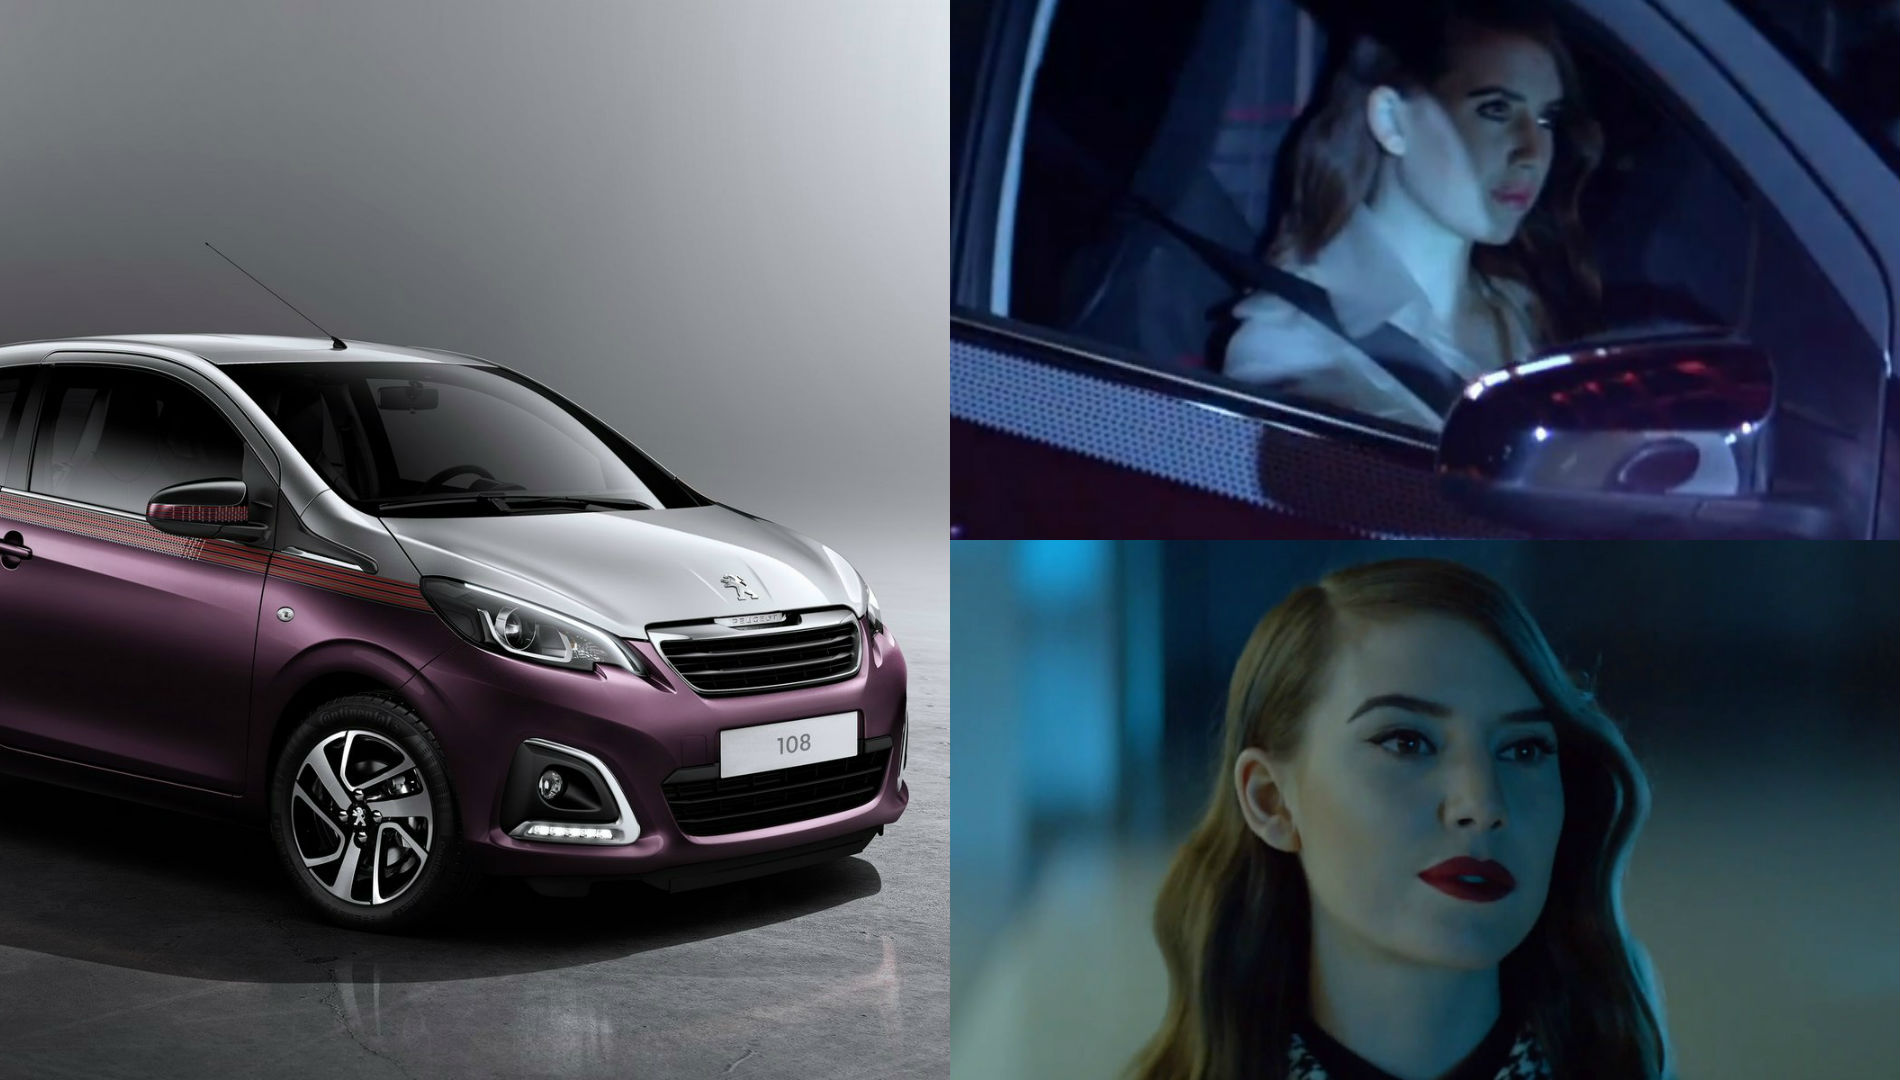 photo of Lykke Li Peugeot - car